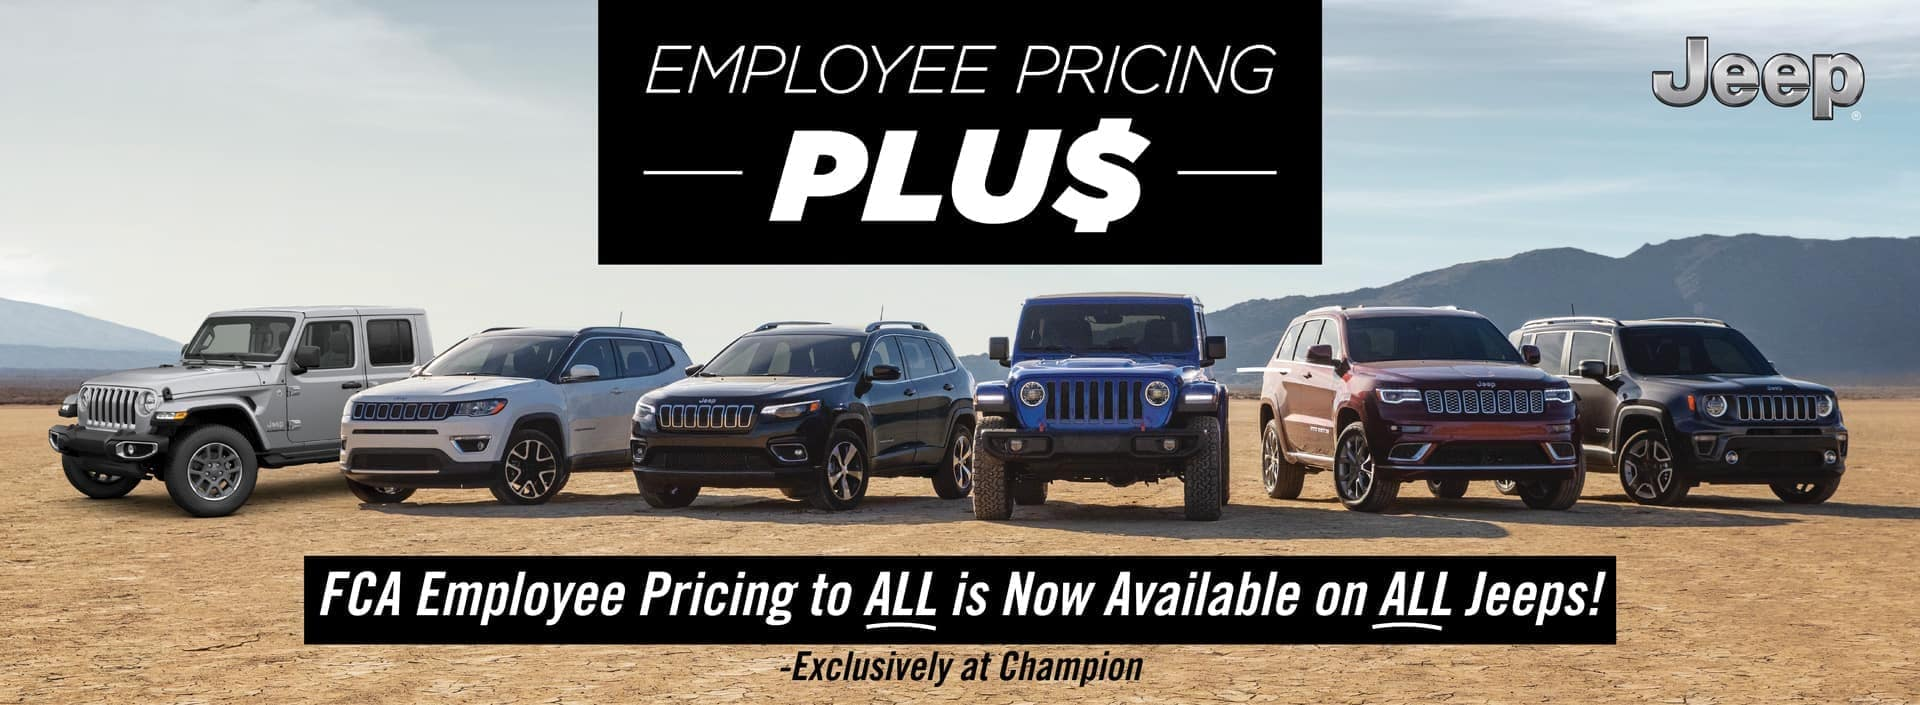 Jeep Employee Pricing